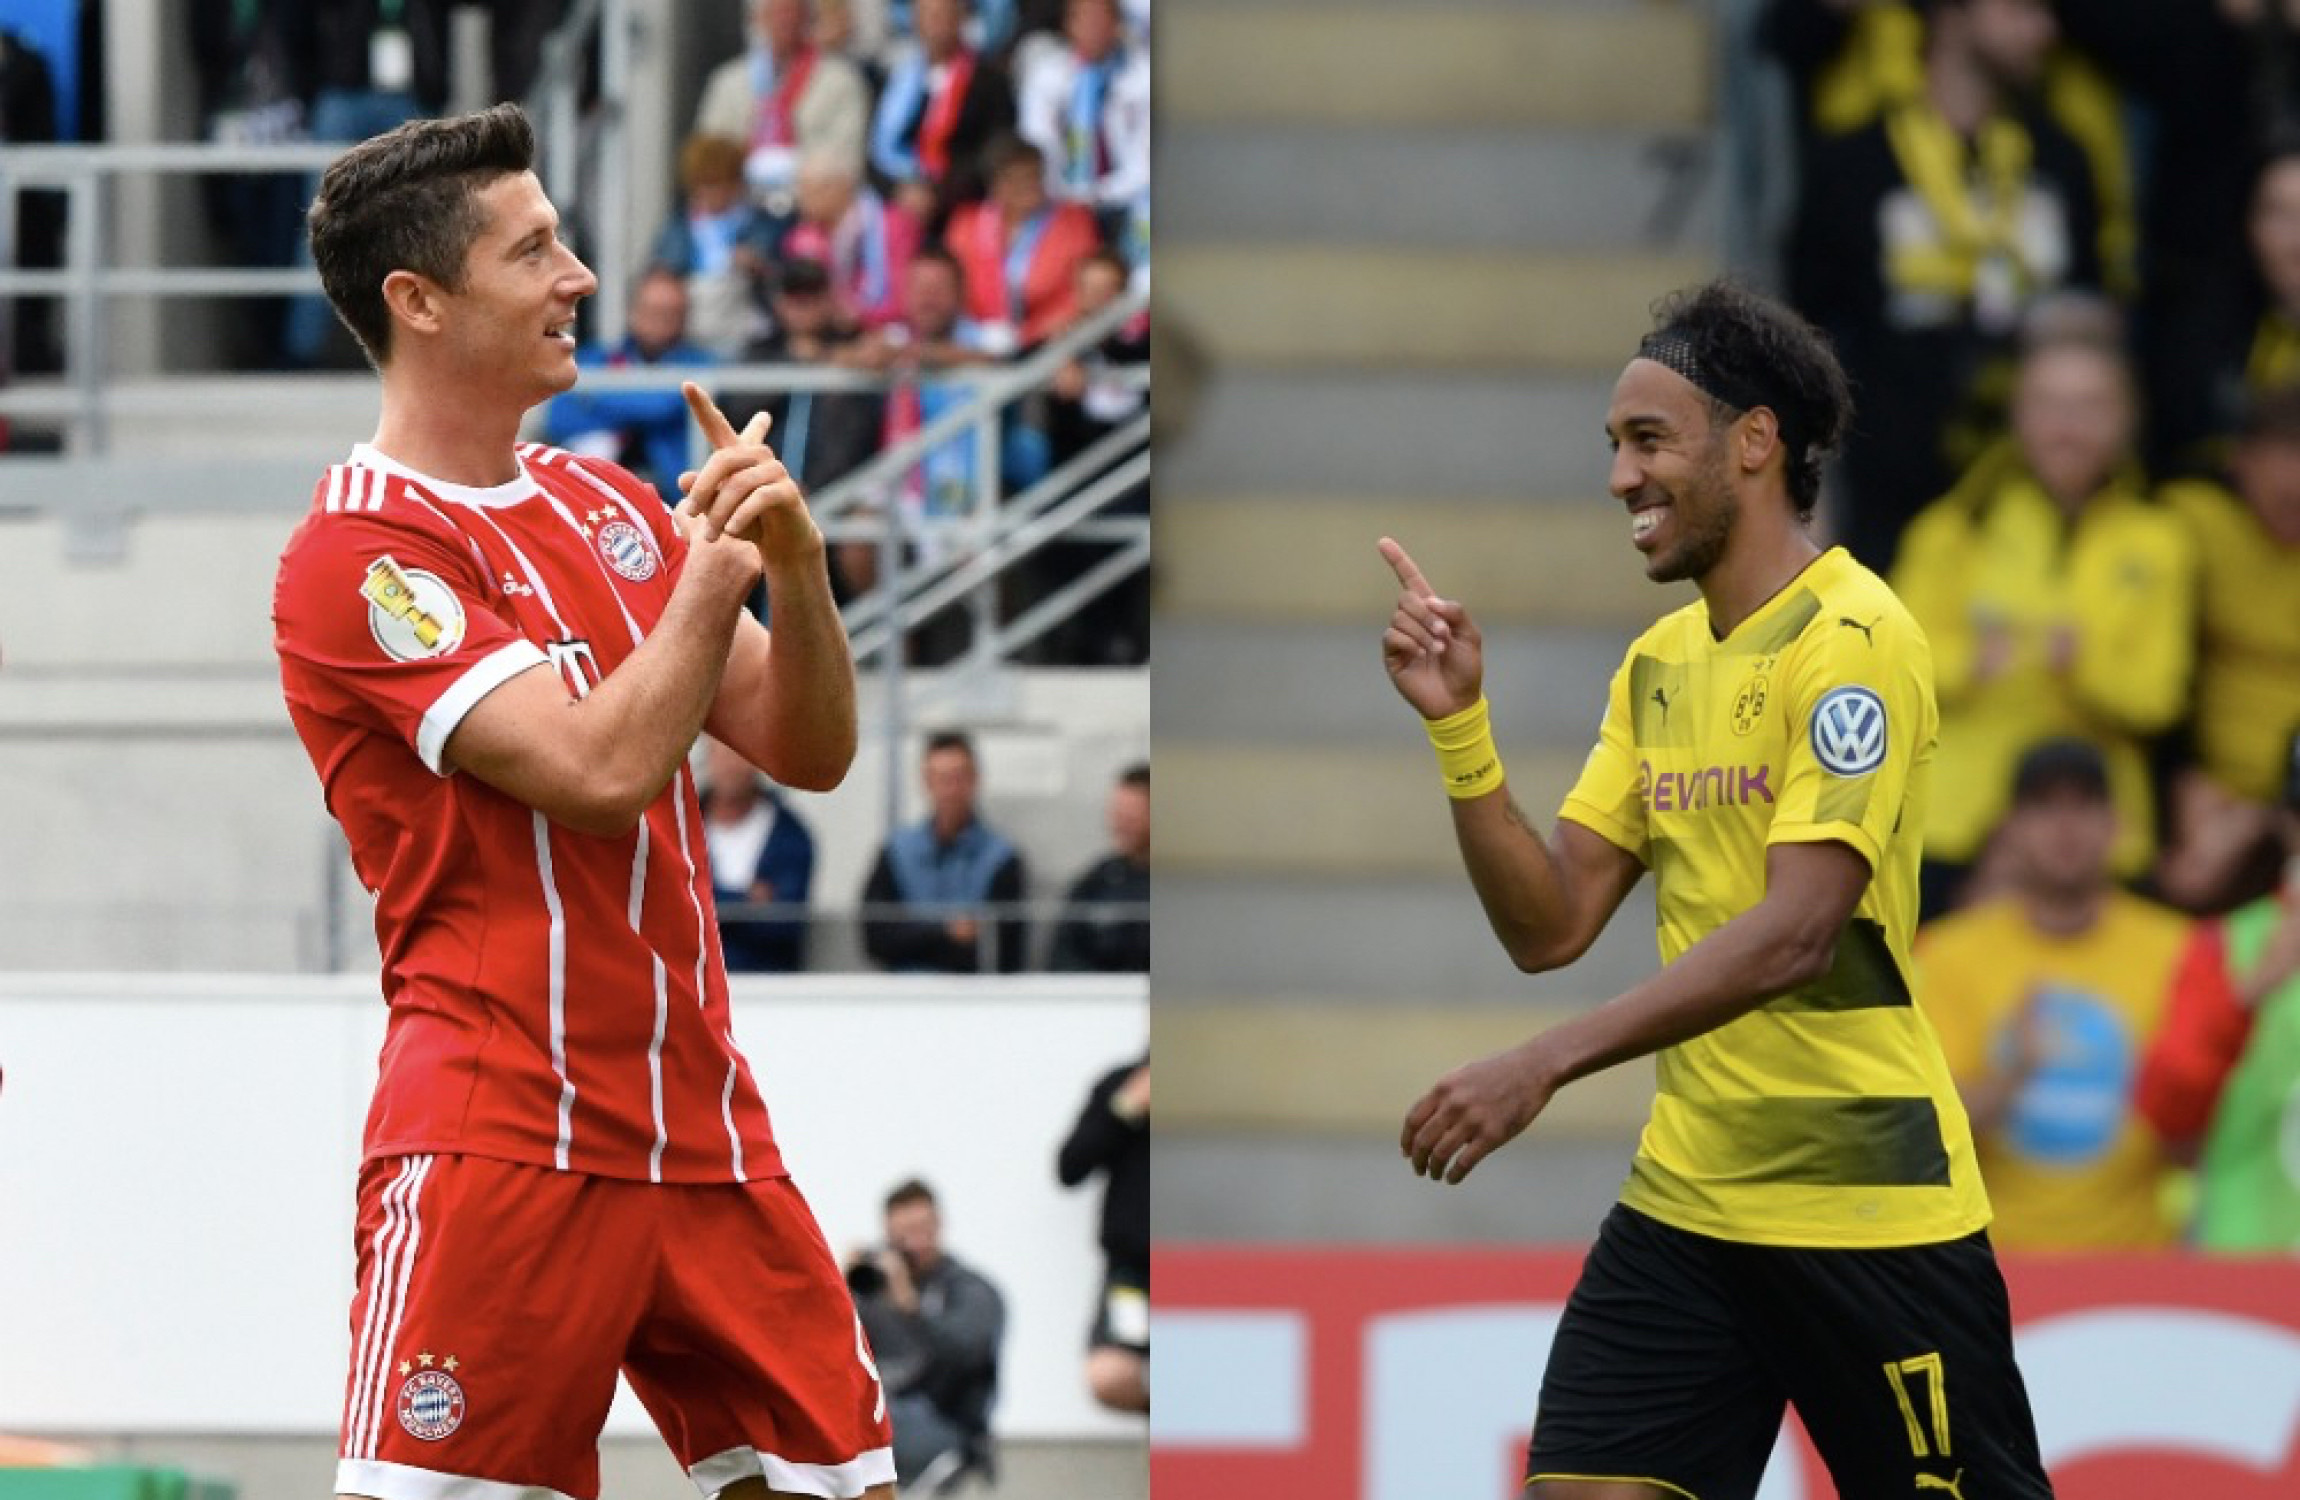 Bayern Munich and Borussia Dortmund cruise through in DFB Pokal